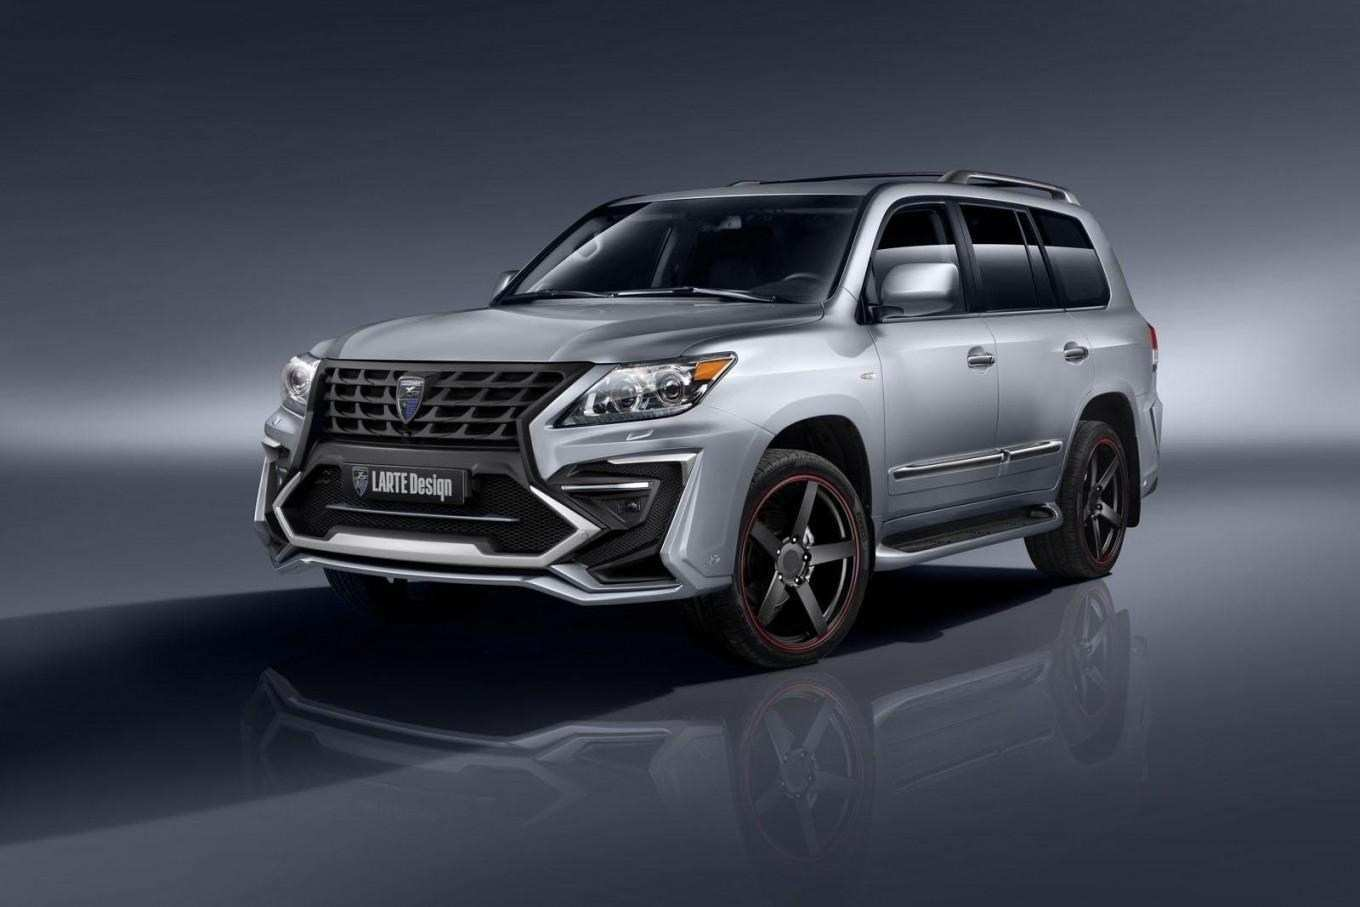 36 New 2019 Lexus Lx 570 Release Date Pricing with 2019 Lexus Lx 570 Release Date